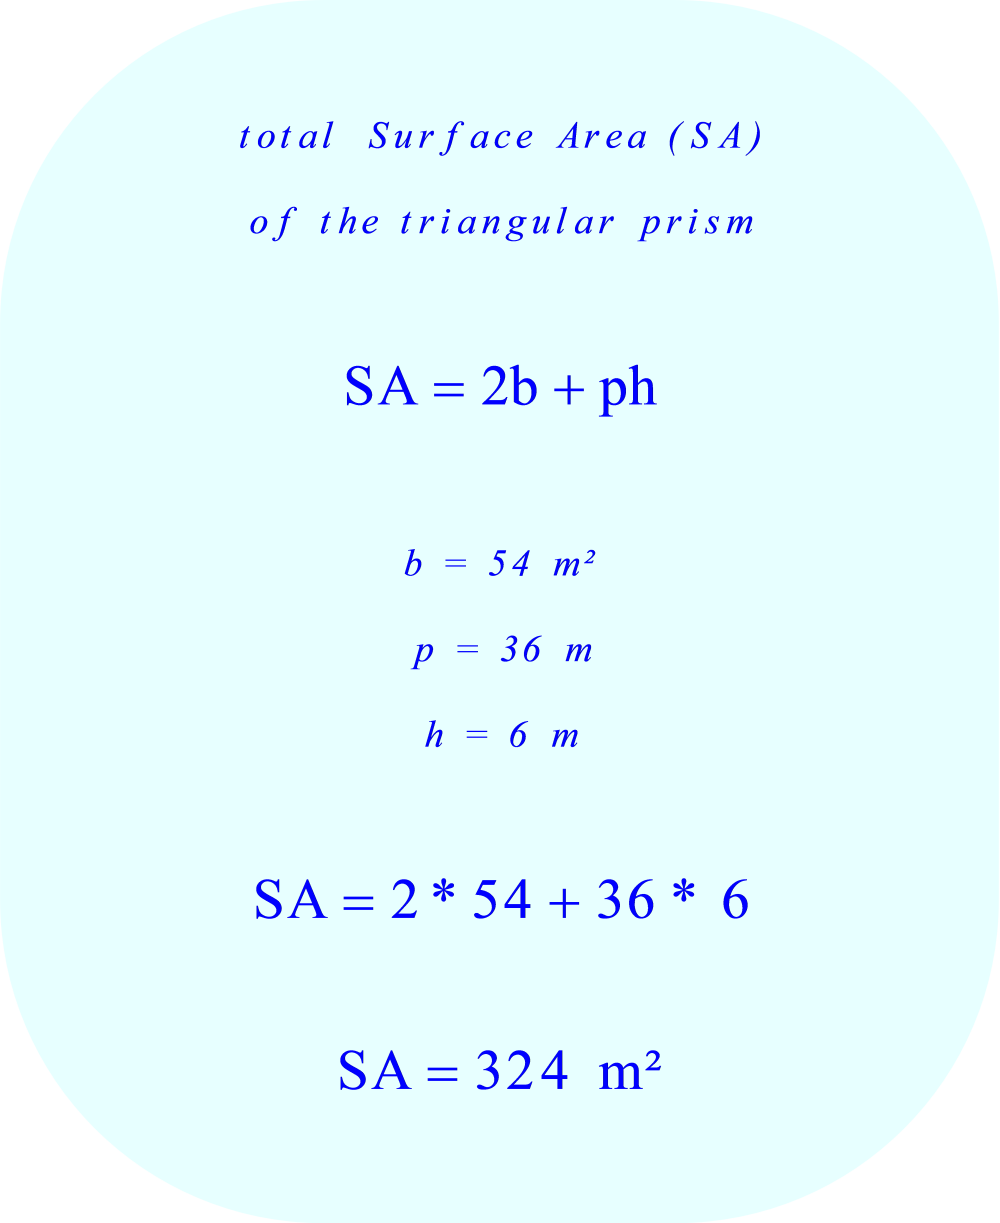 Triangular prism - calculating the total surface area 